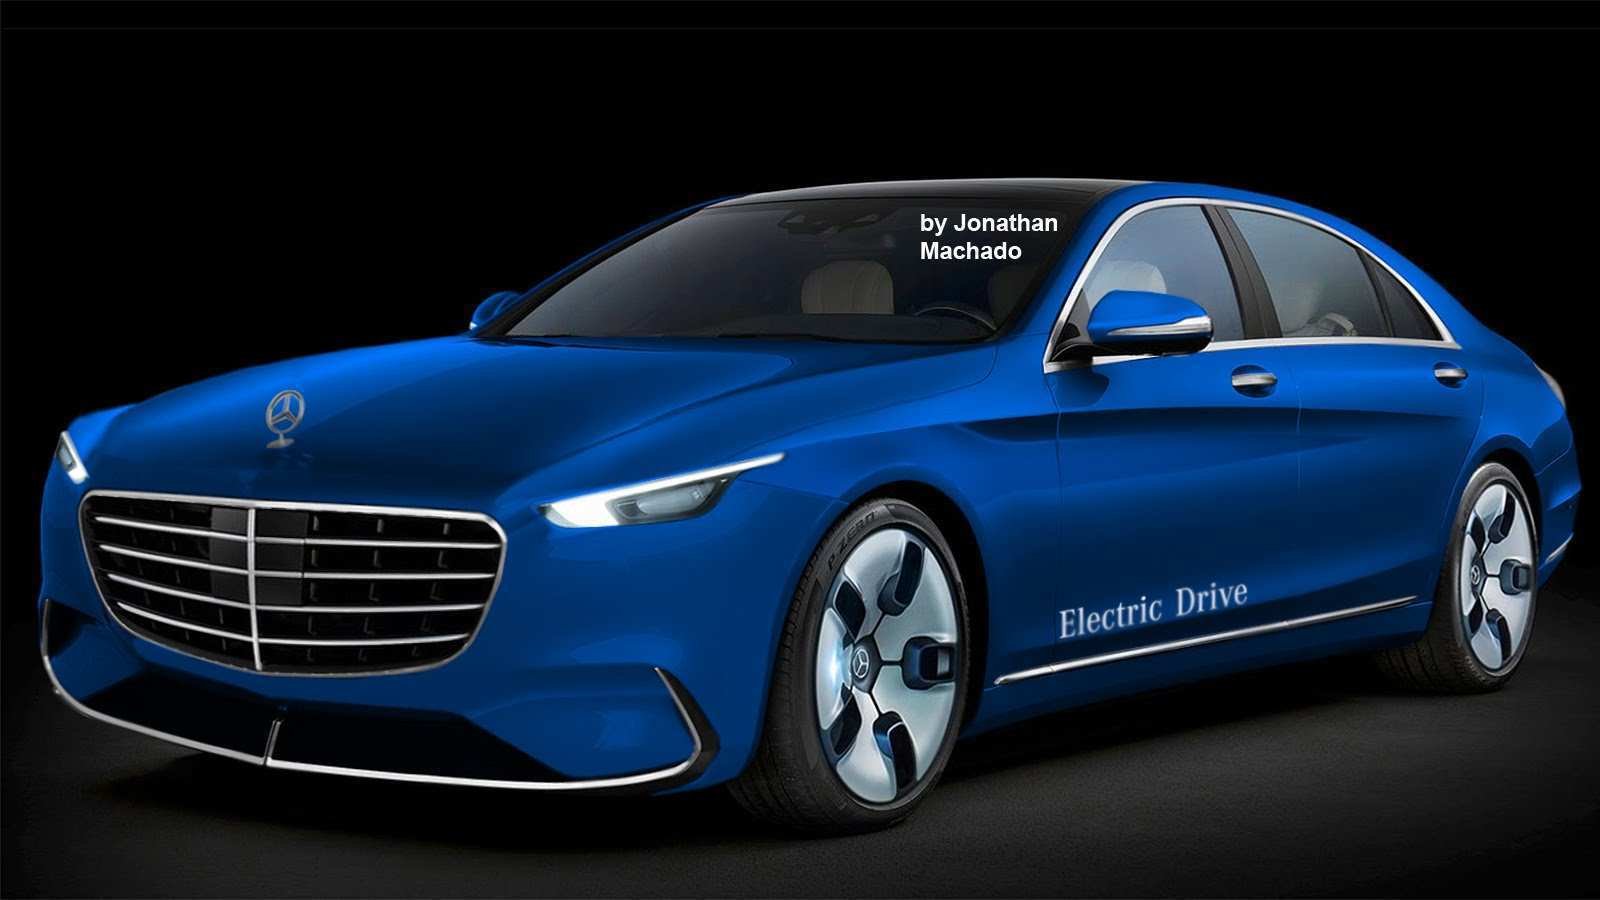 50 Concept of Electric Mercedes 2020 Price and Review with Electric Mercedes 2020